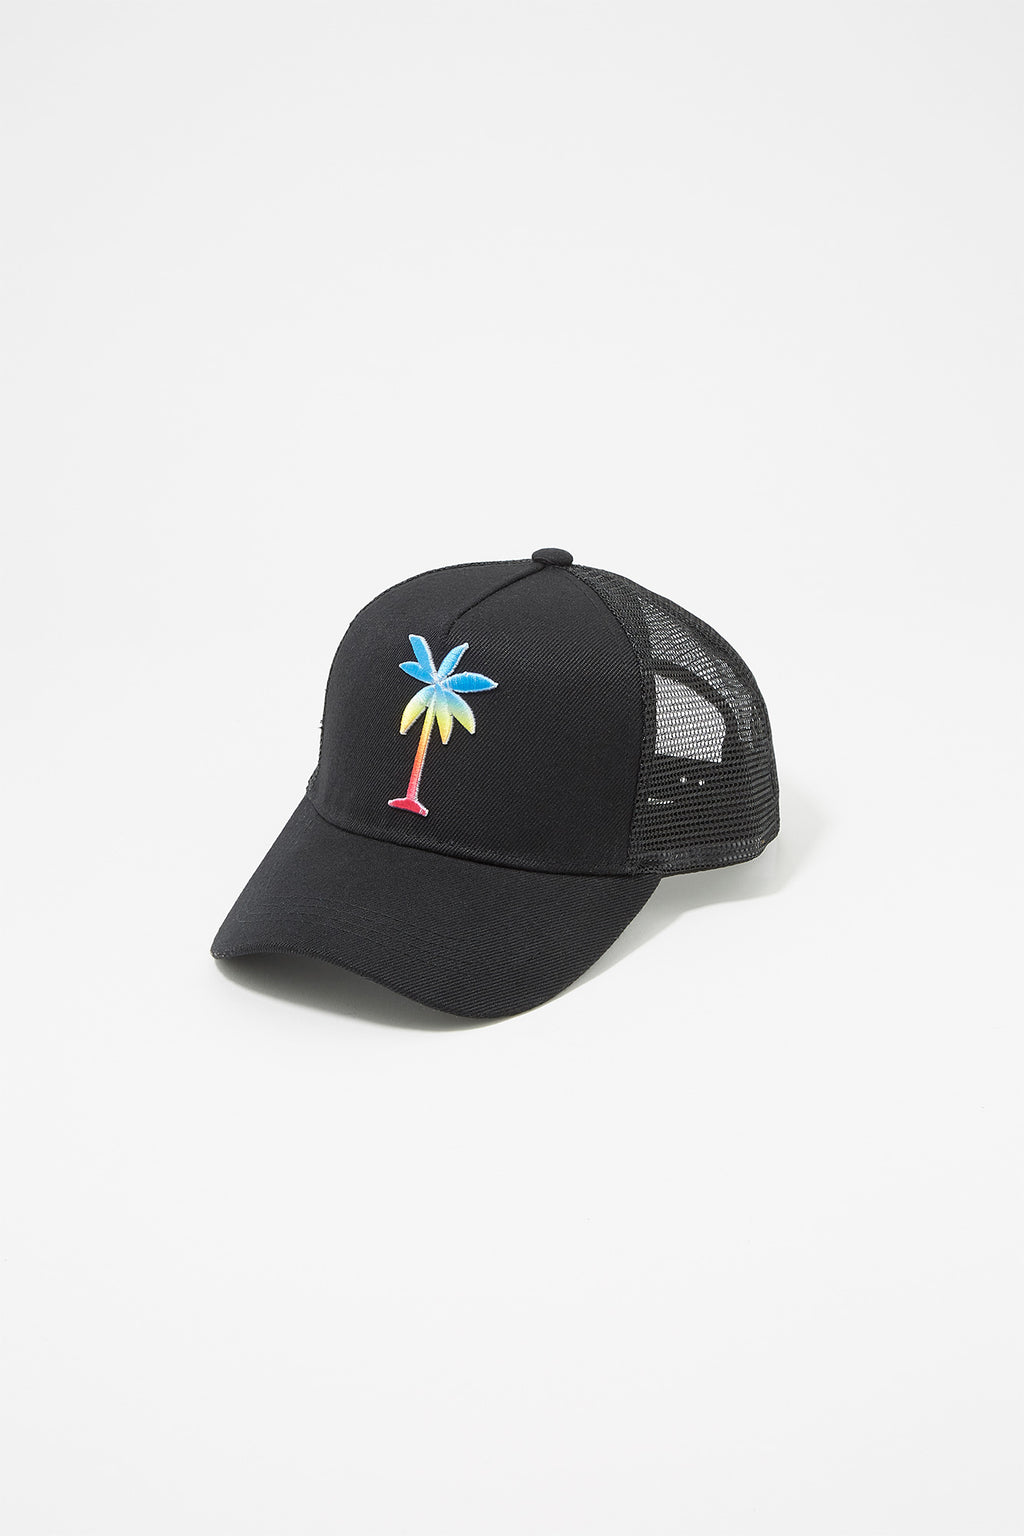 3e7b8798664 Zoo York Mens Palm Tree Trucker Hat